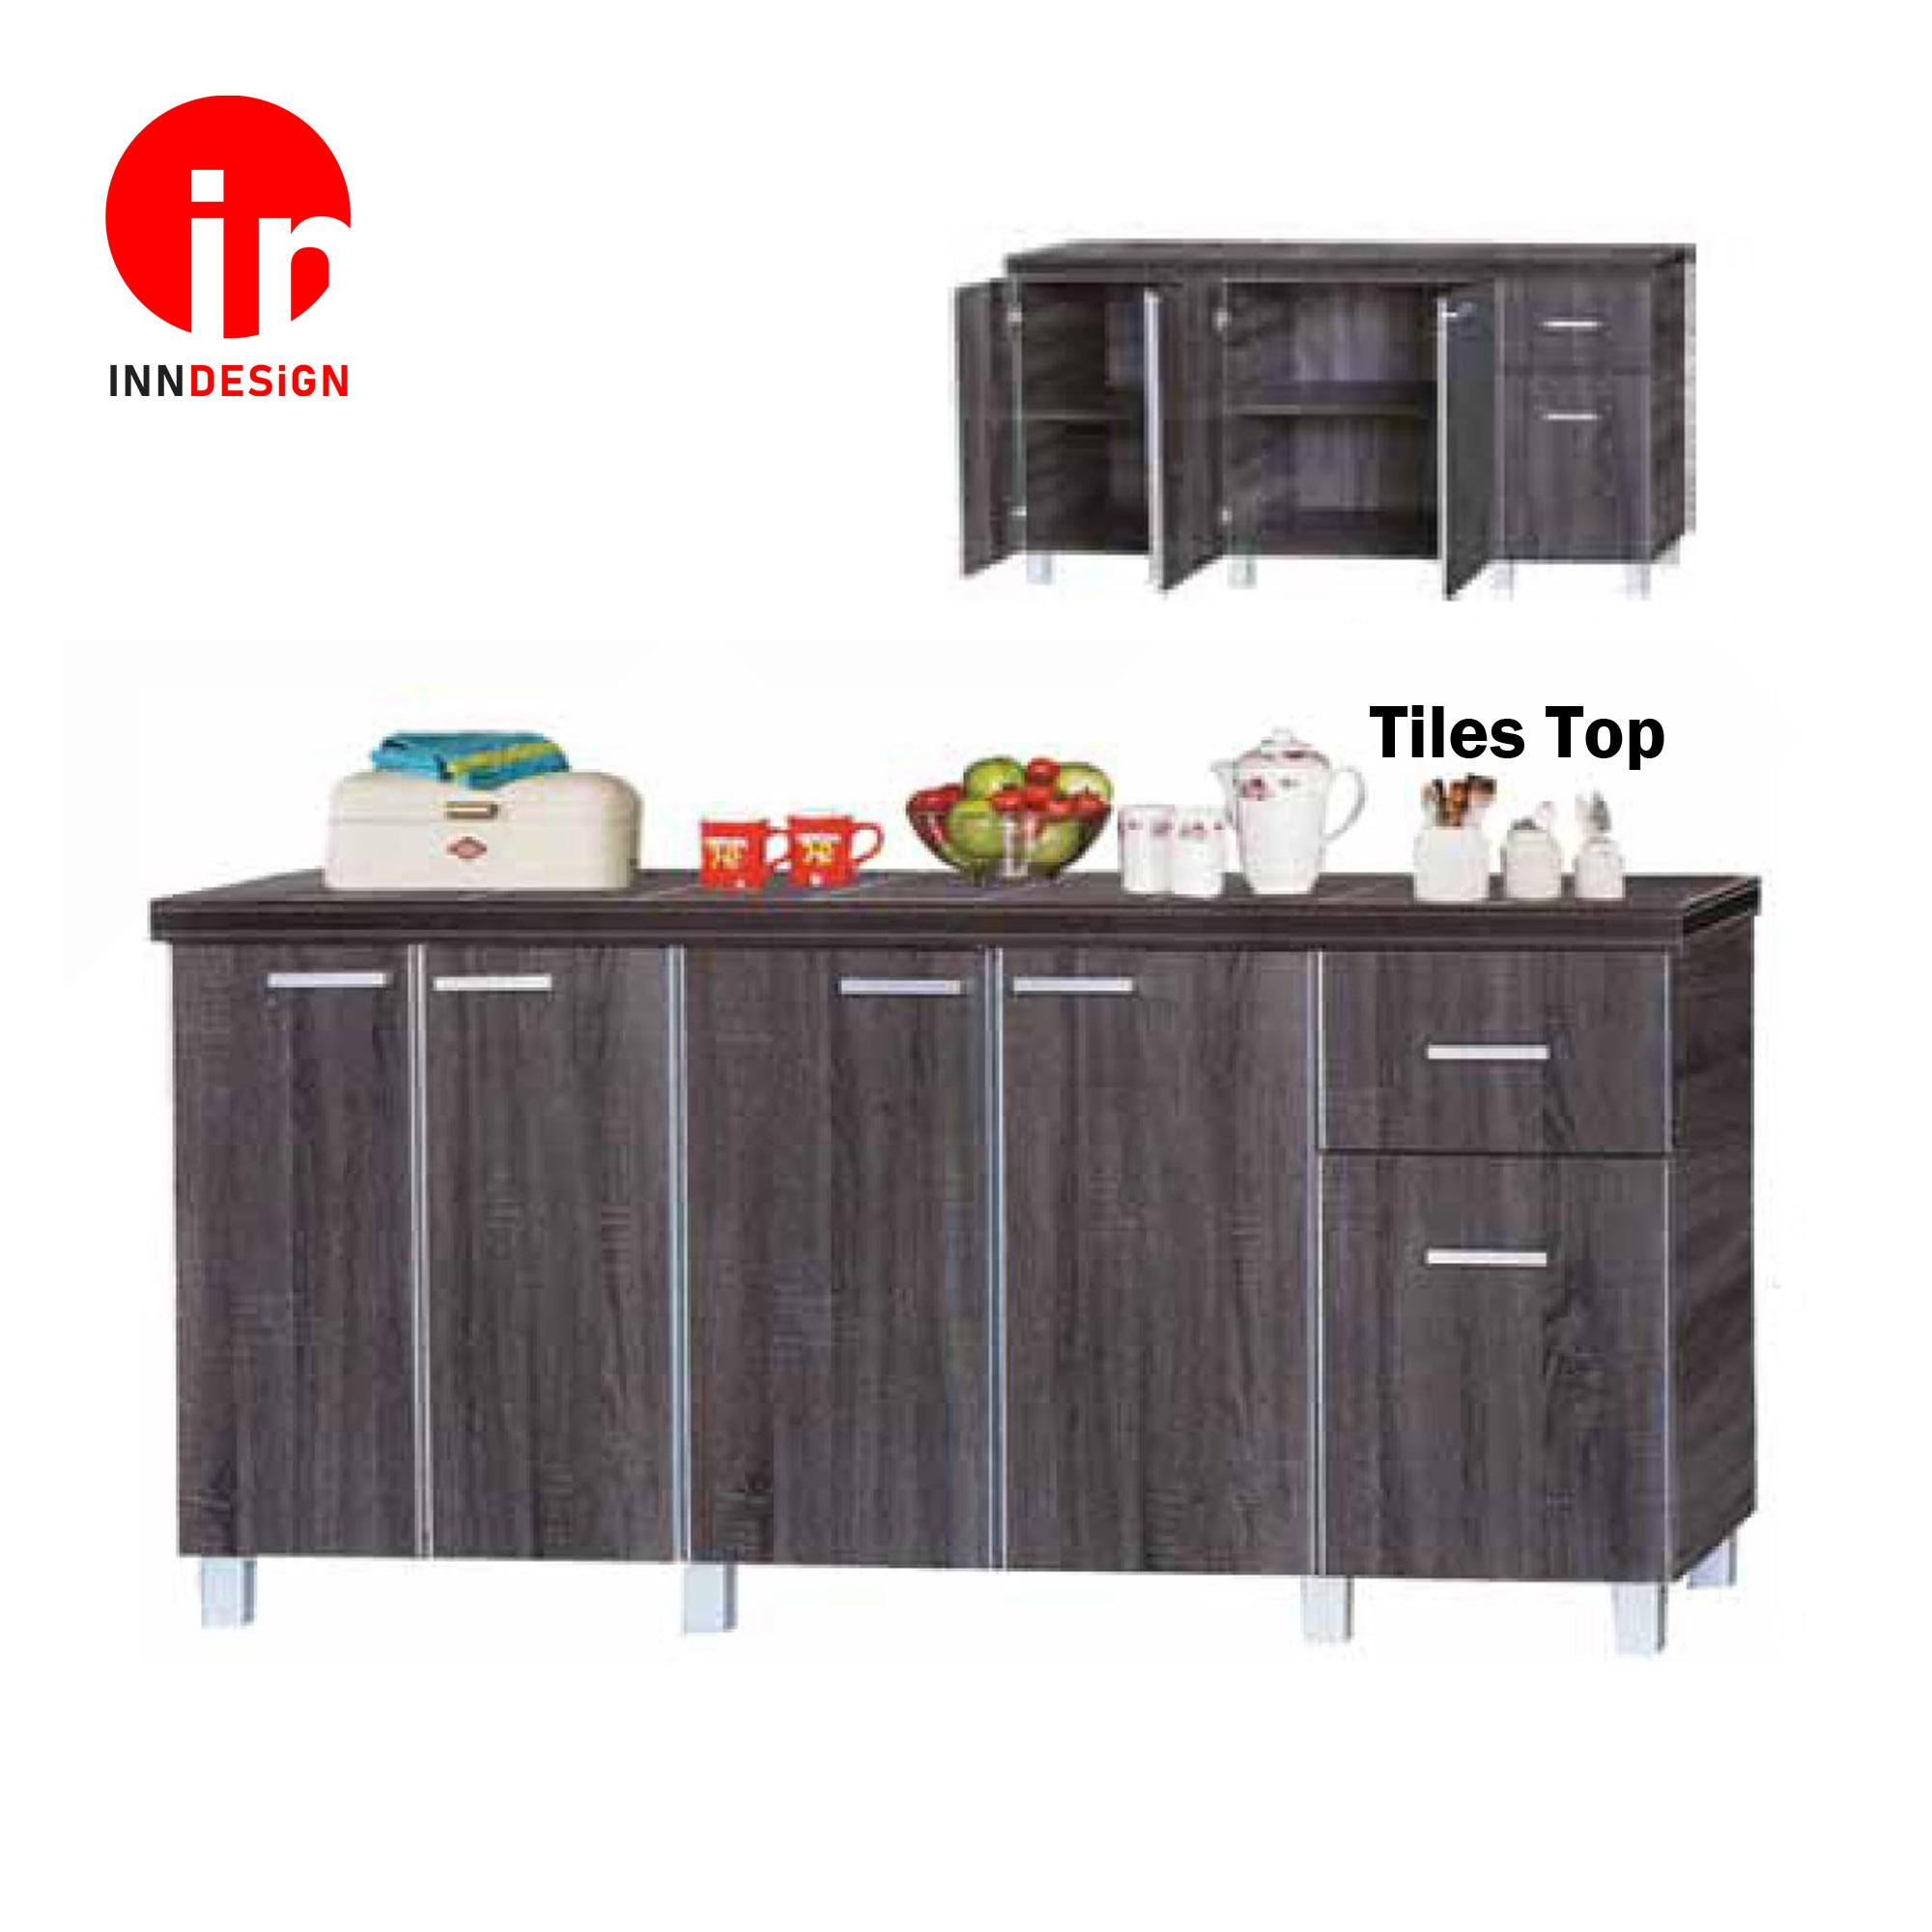 Cassiva 5 Doors With Drawer Kitchen Cabinet (Ceramic Tiles Top) (Free Delivery and Installation) (Dark Oak)